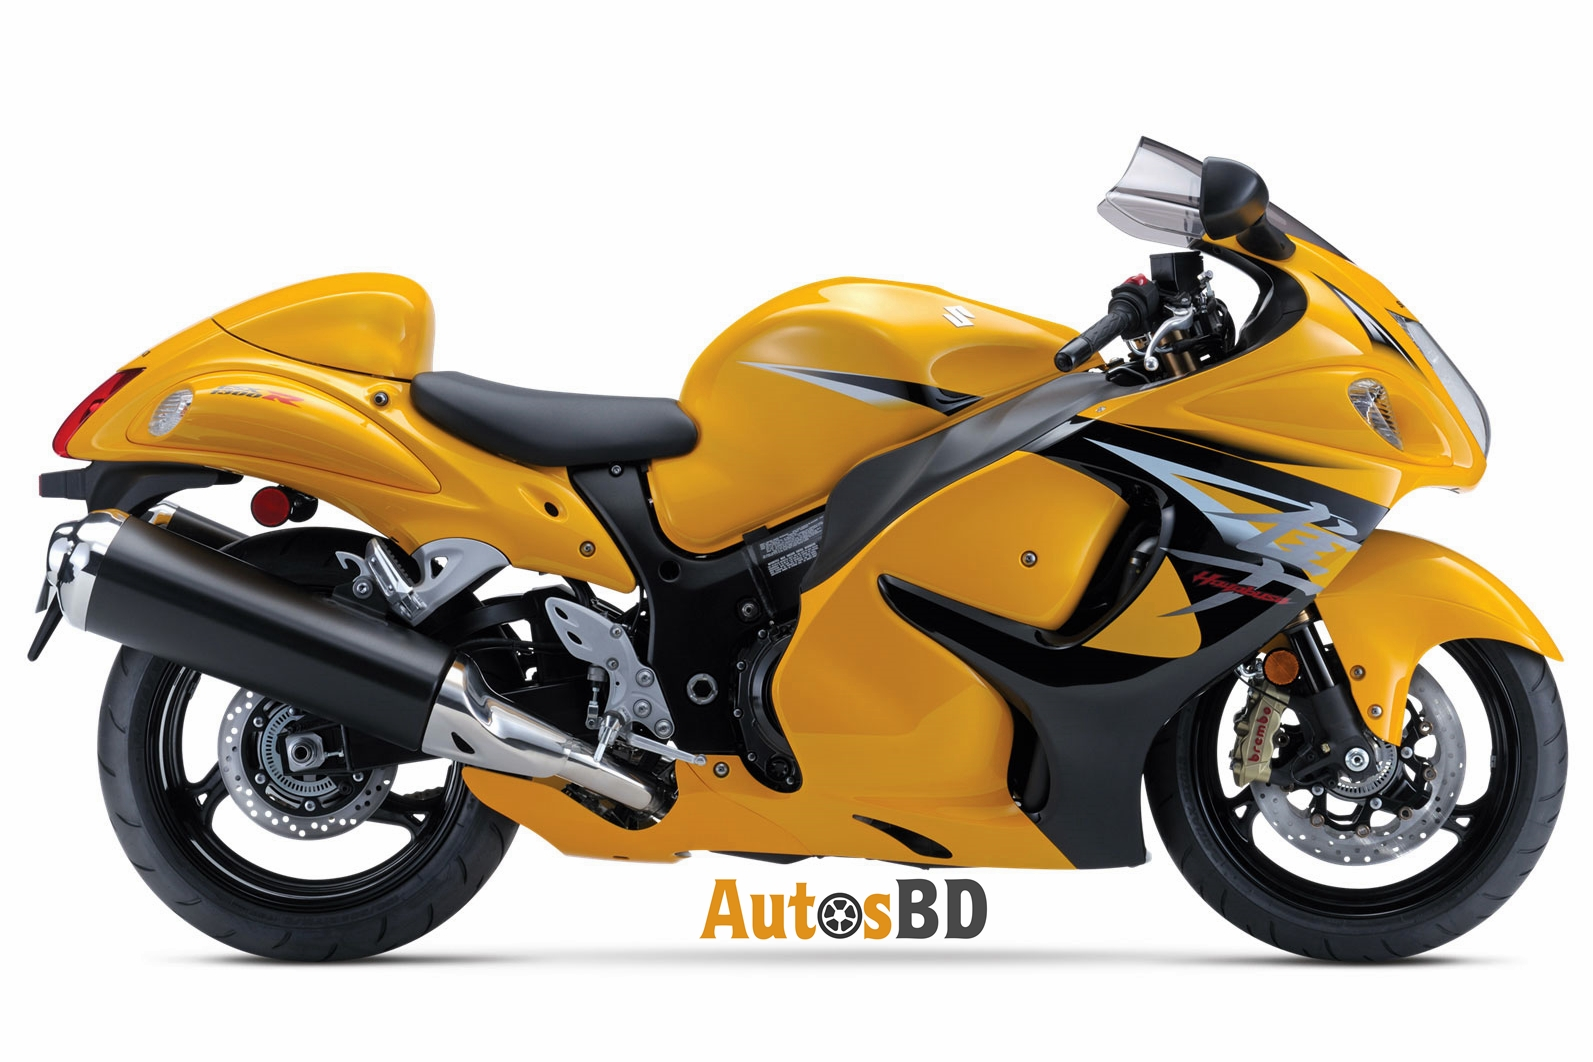 Suzuki Hayabusa GSX1300R Limited Edition Motorcycle Specification